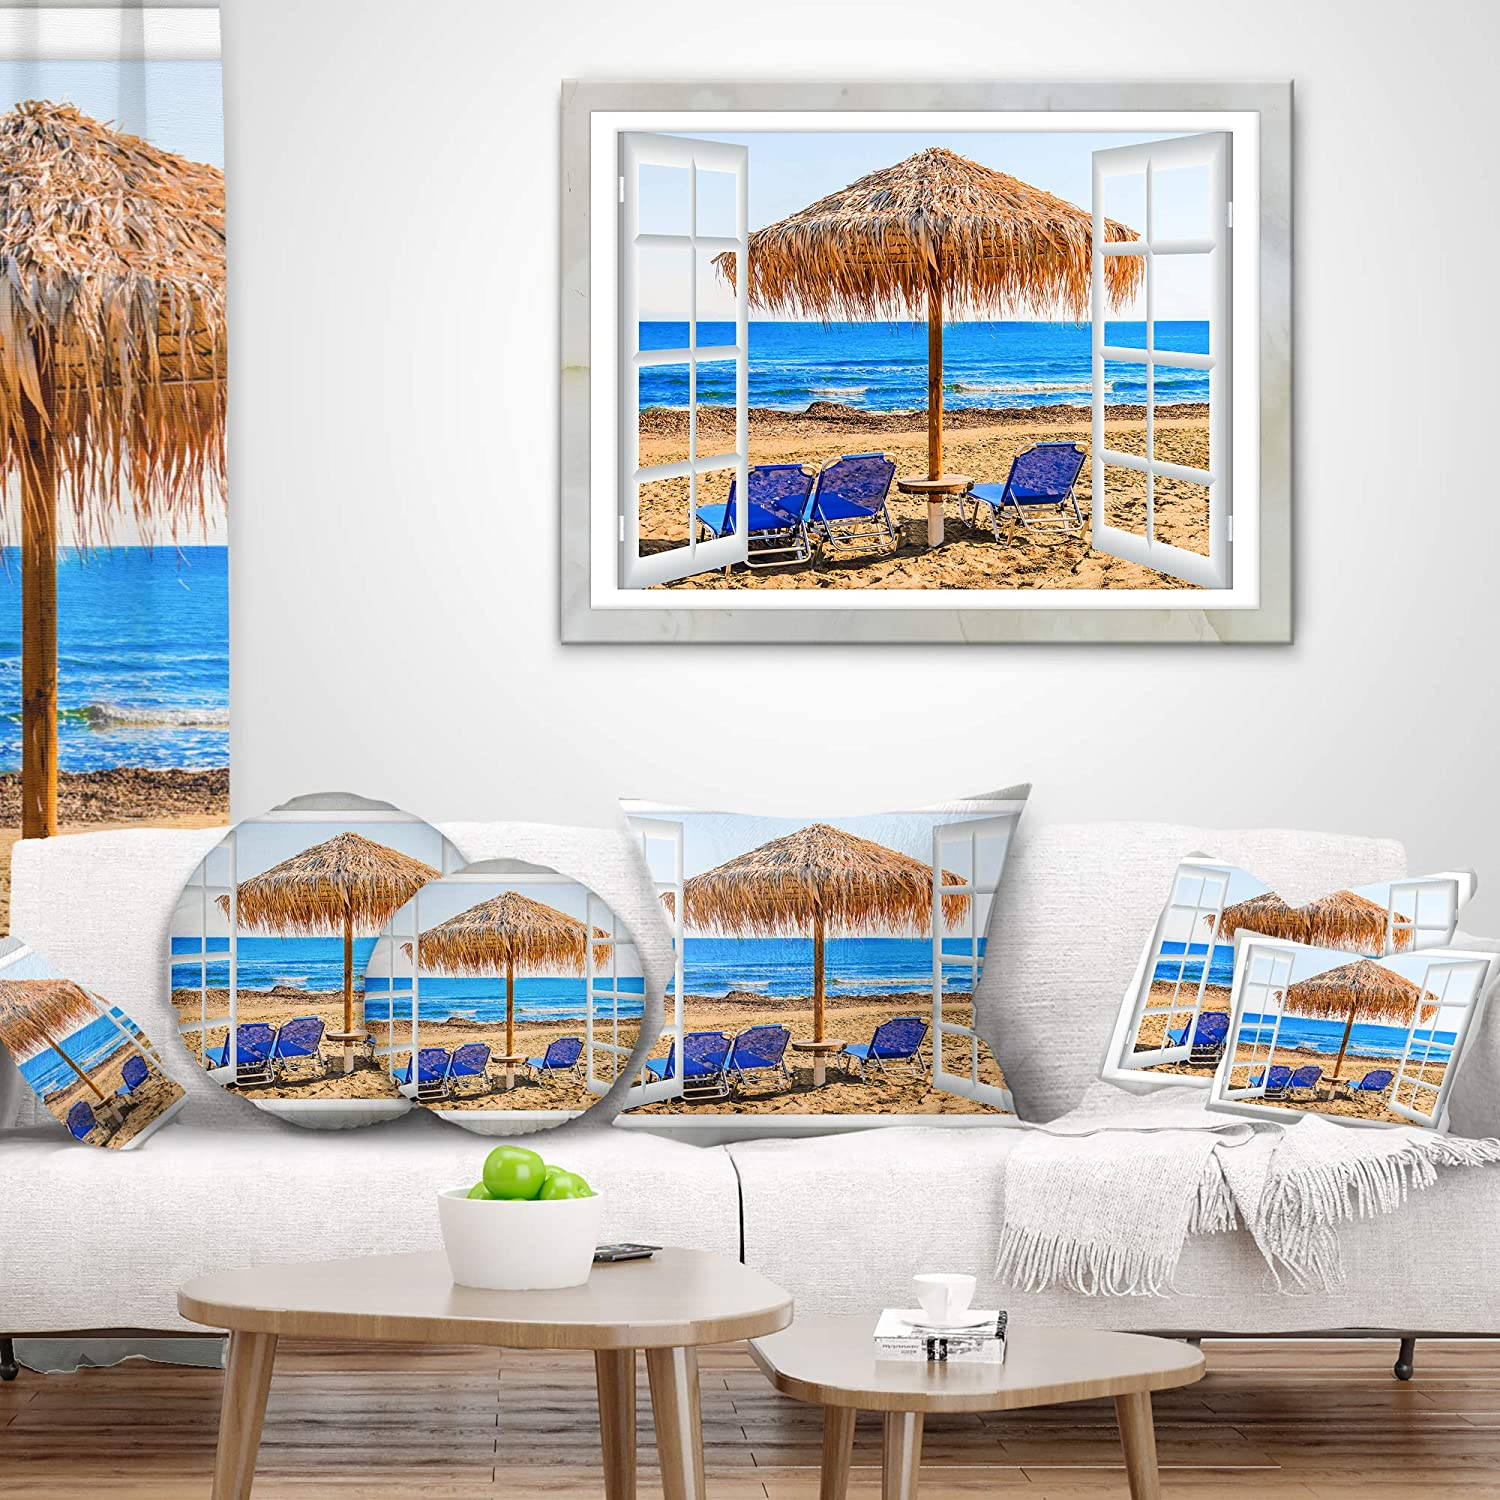 in Insert Printed On Both Side Sofa Throw Pillow 26 in x 26 in Designart CU11430-26-26 Window Open to Beach Hut with Chairs Seashore Cushion Cover for Living Room